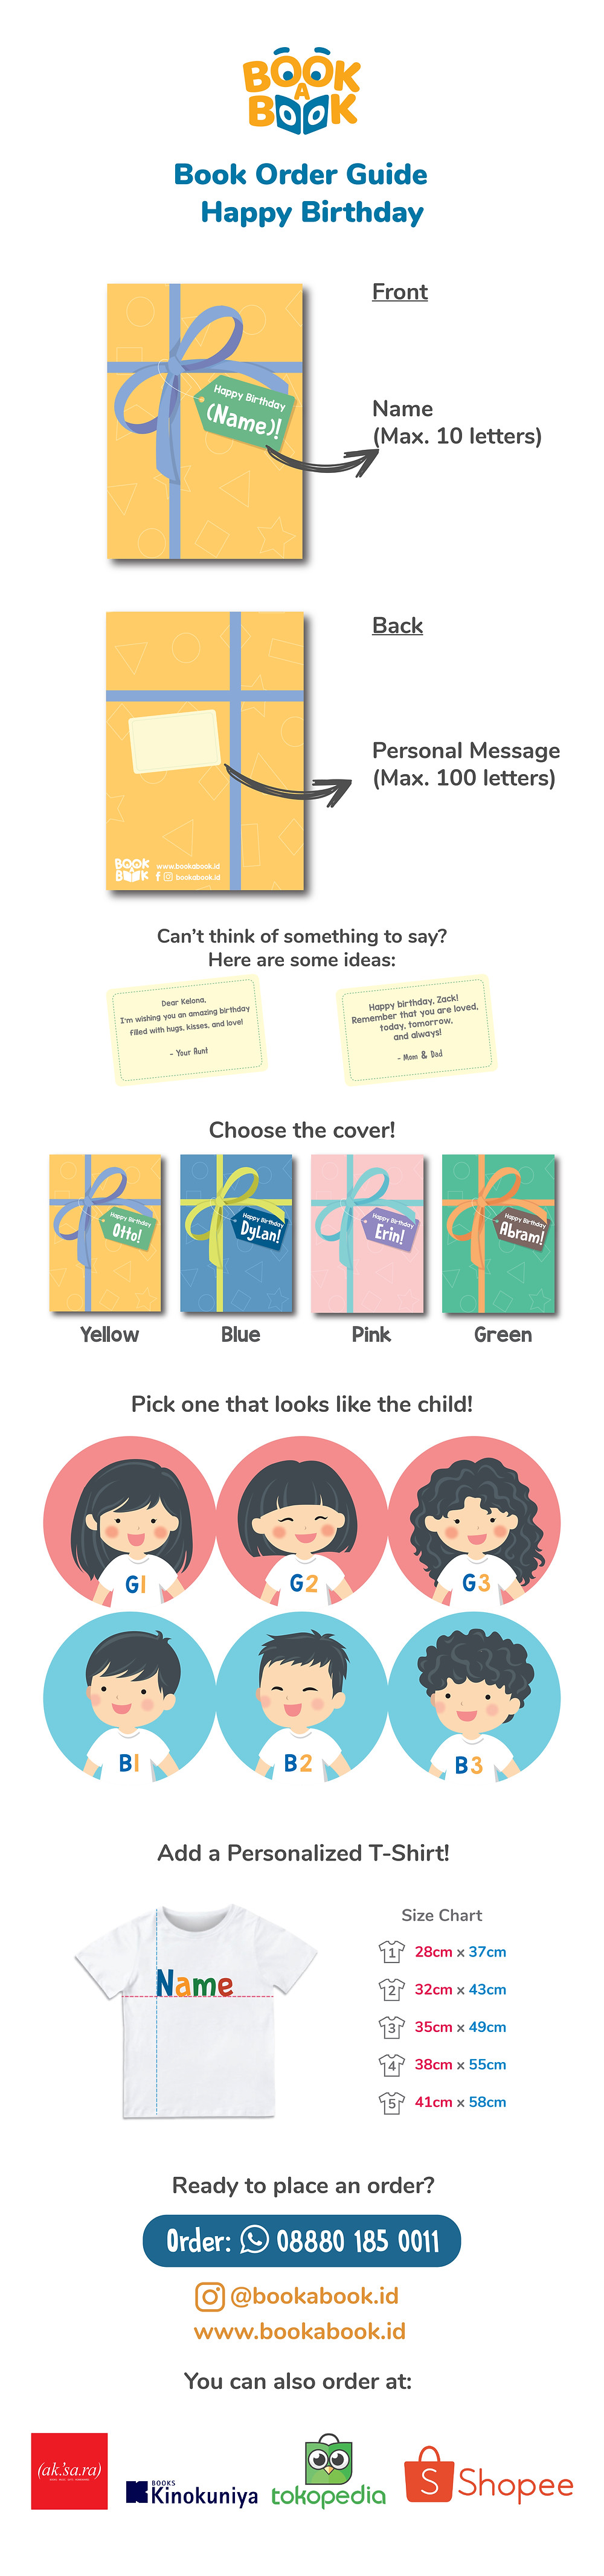 How to order Happy Birthday! book